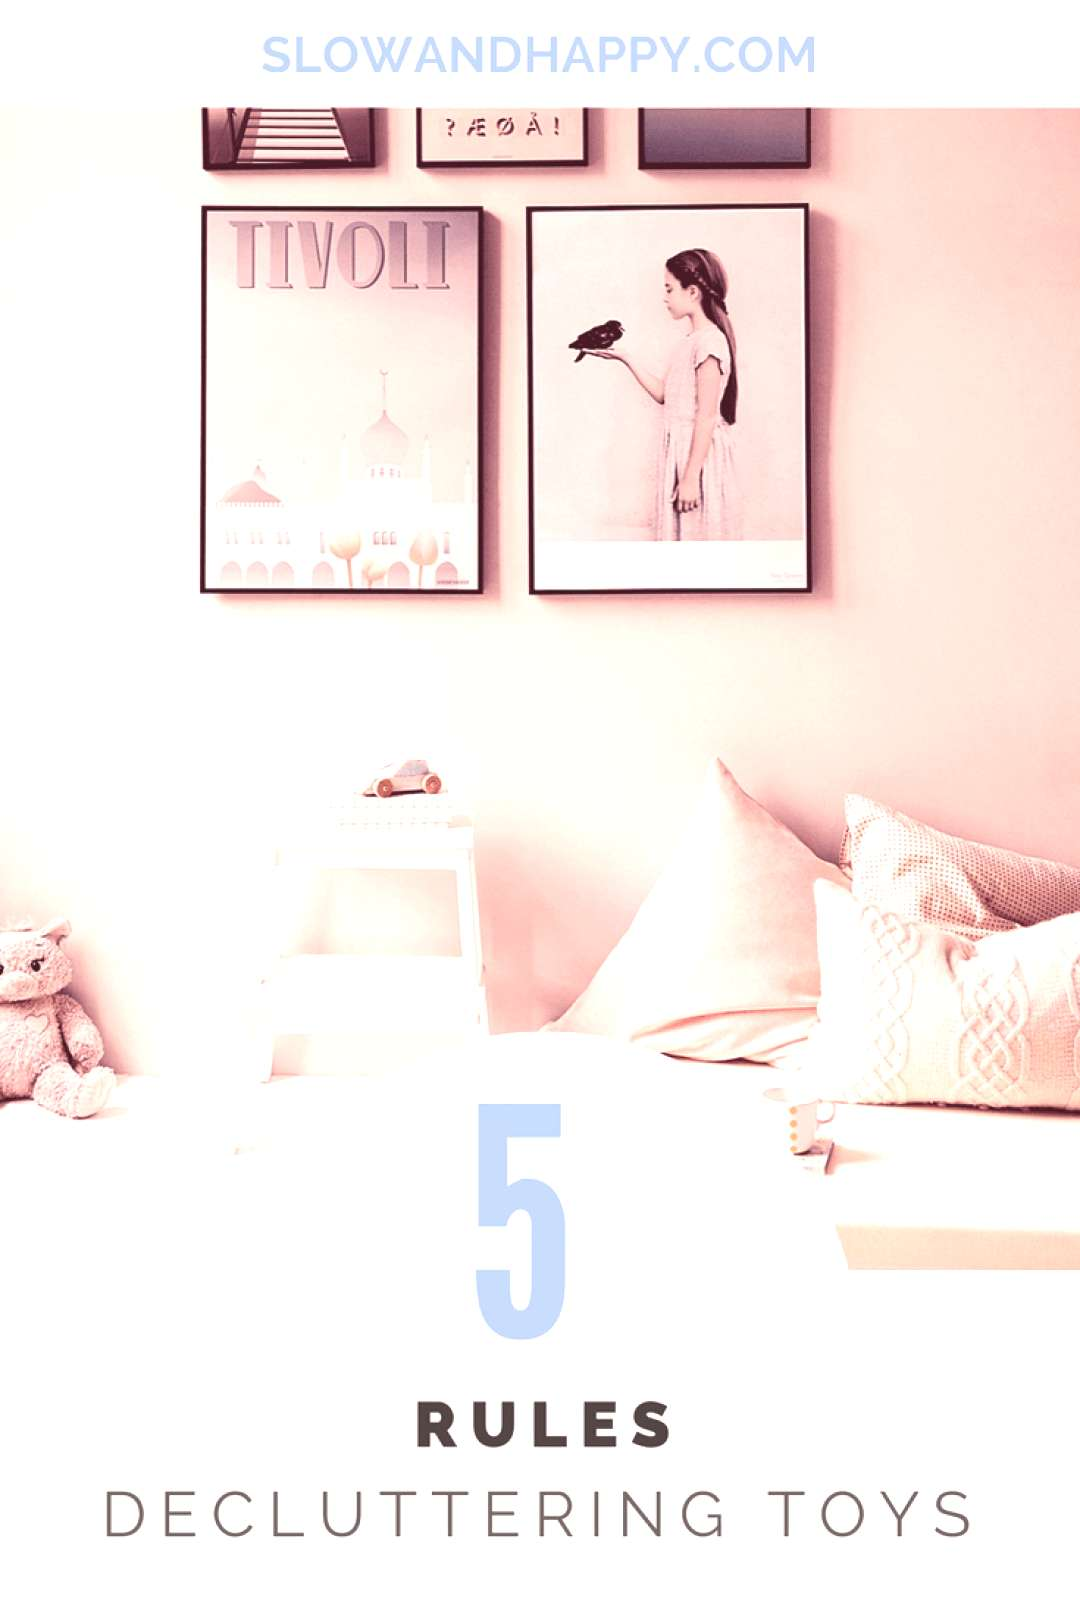 Rules for Decluttering Toys Slow And Happy blog about simple life. minimalist, minimalism rules, m